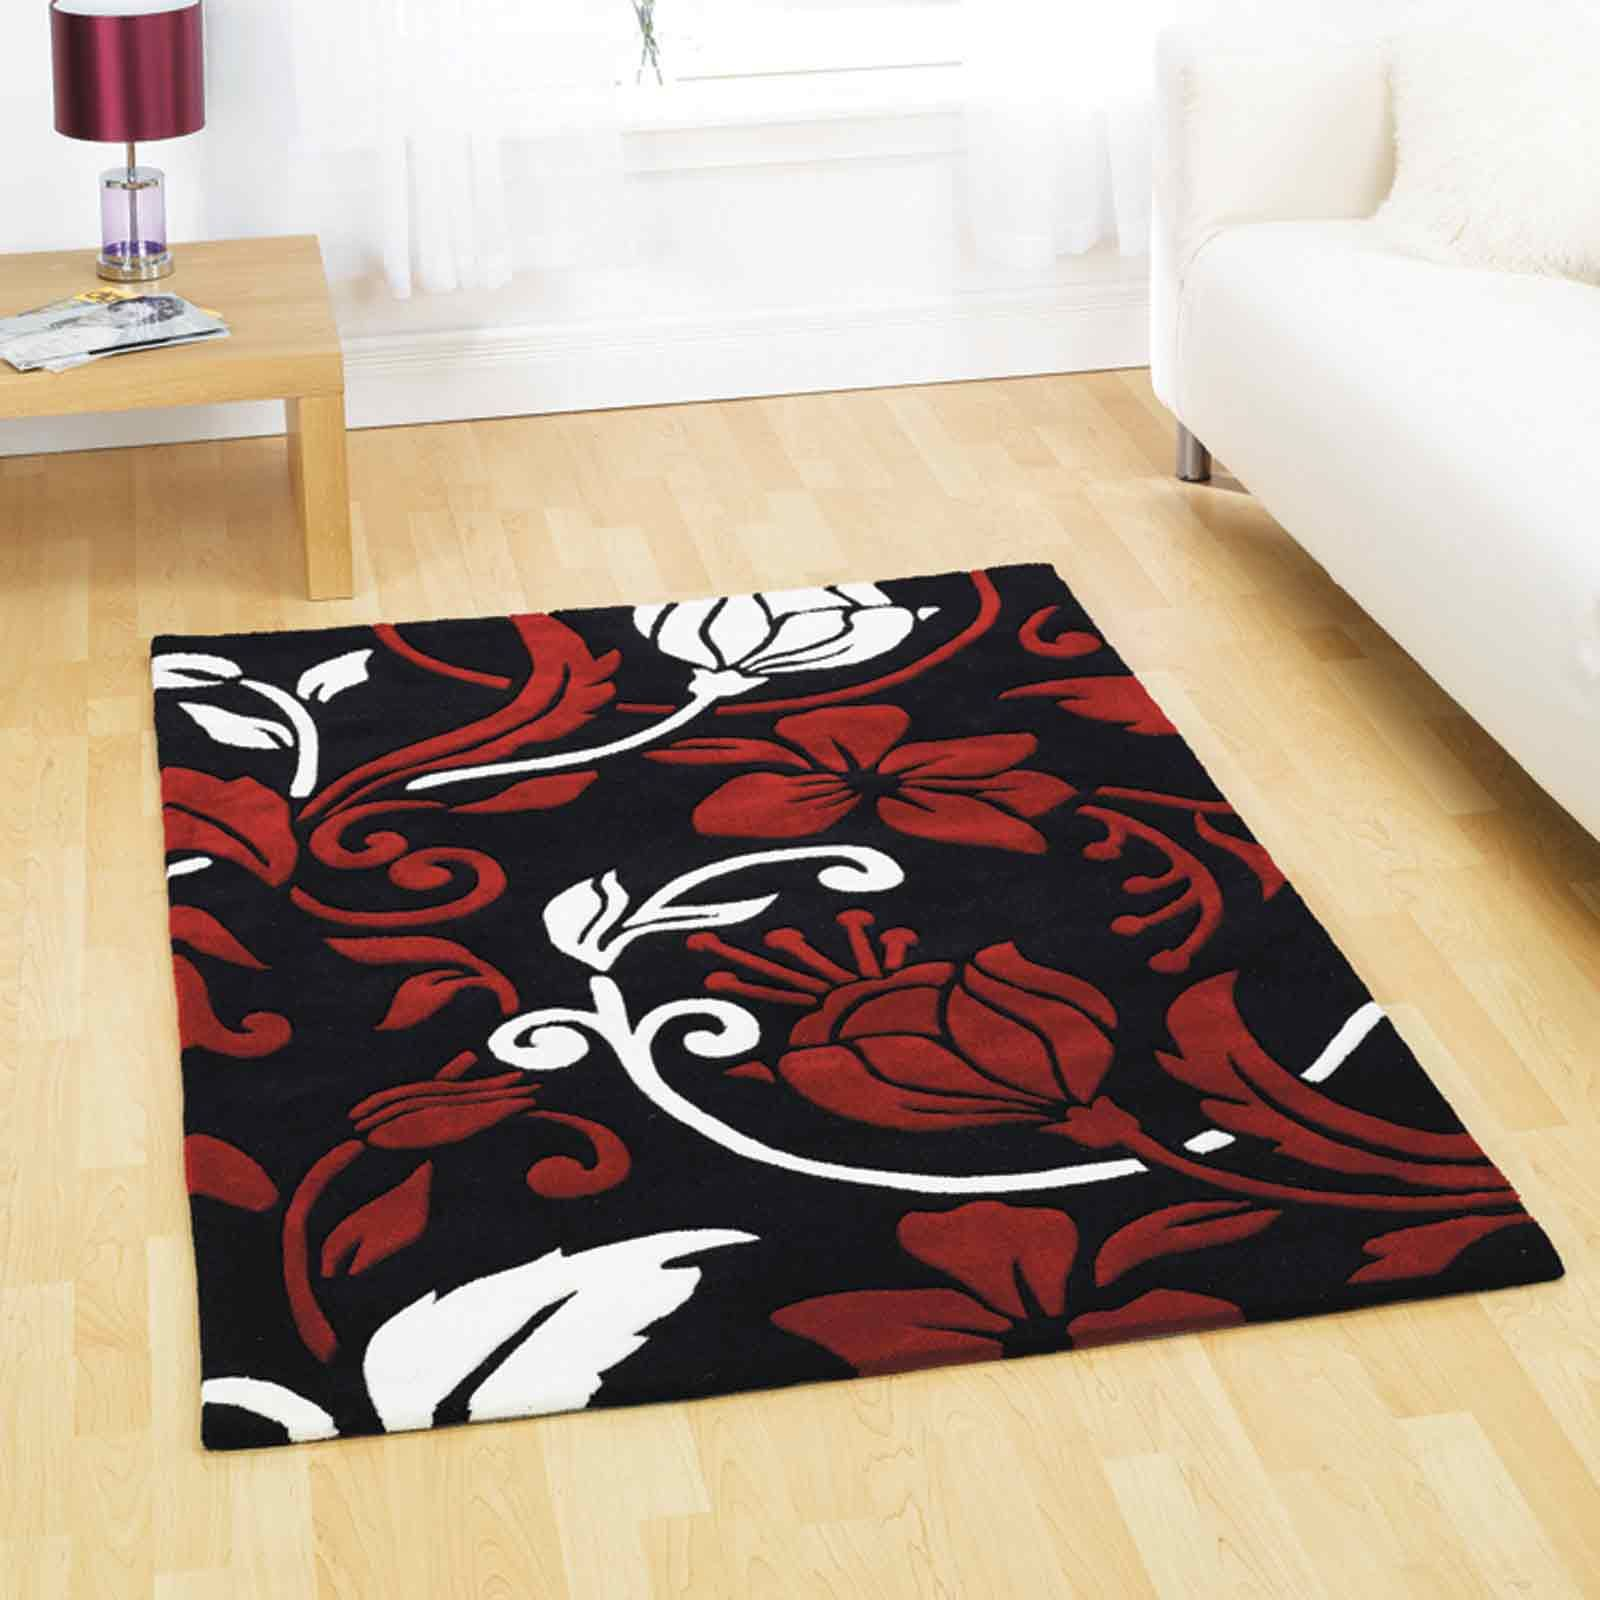 Infinite Damask Rugs Offer A Contemporary Damask Design Offers Quality And  Style. #FloorRugs #. Dark RedRed BlackBlack And WhiteRed ...